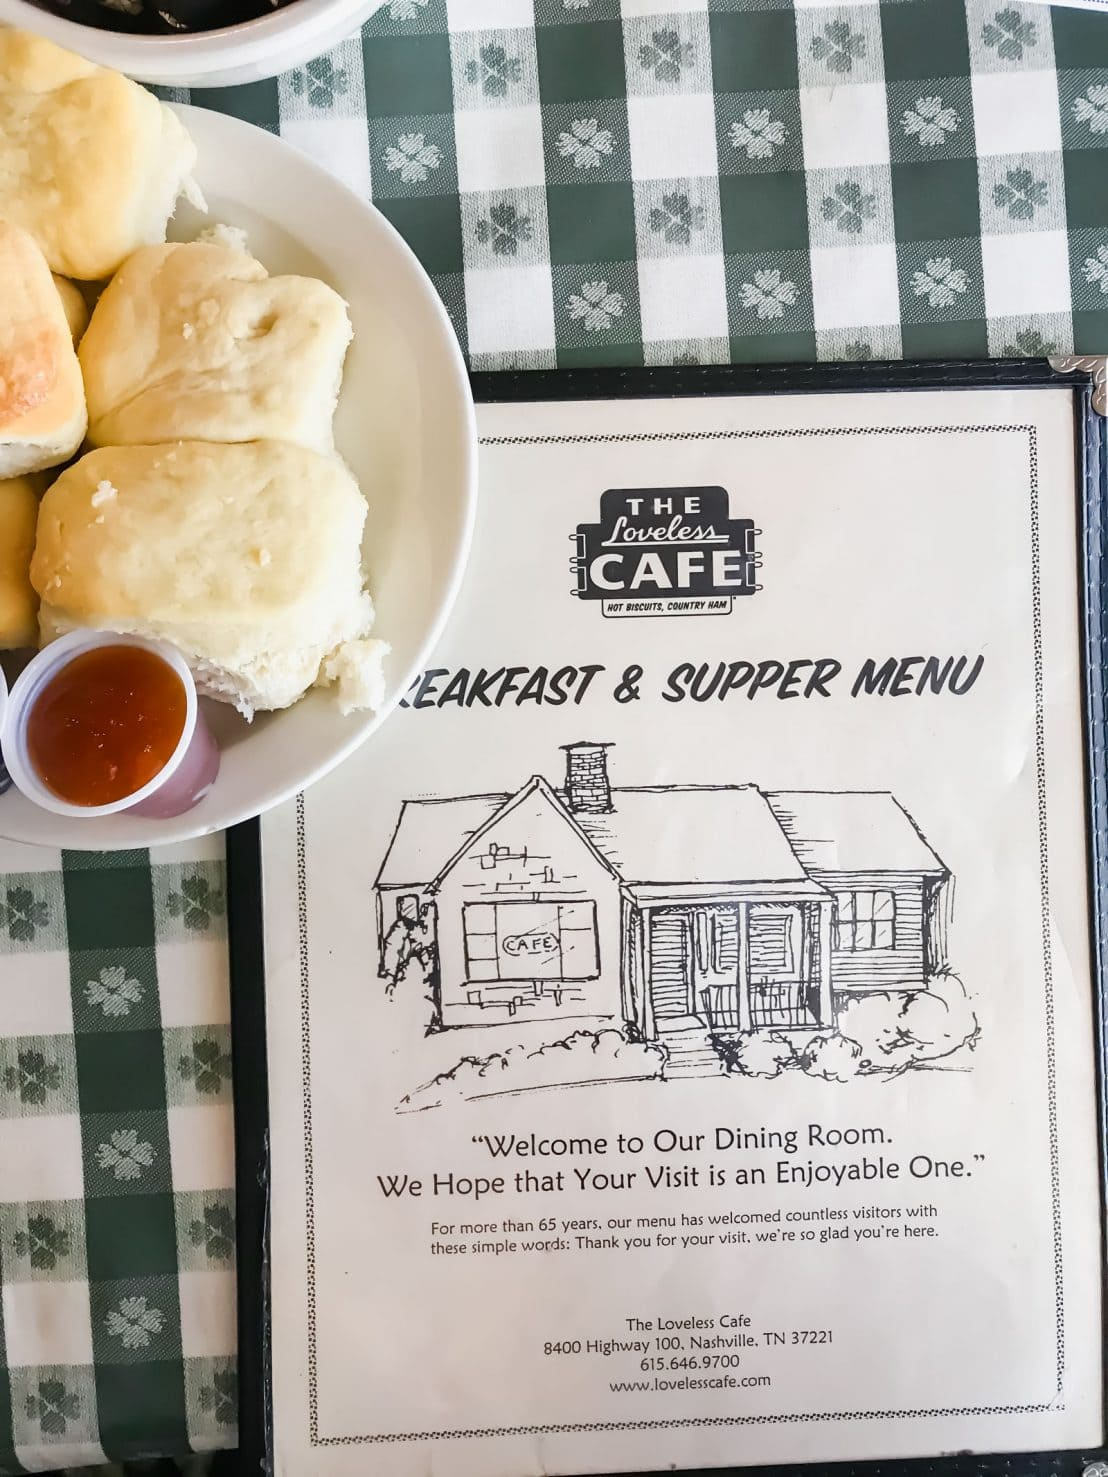 A menu for the Loveless Cafe sitting on a checkerboard tablecloth with a plate of biscuits to the side.